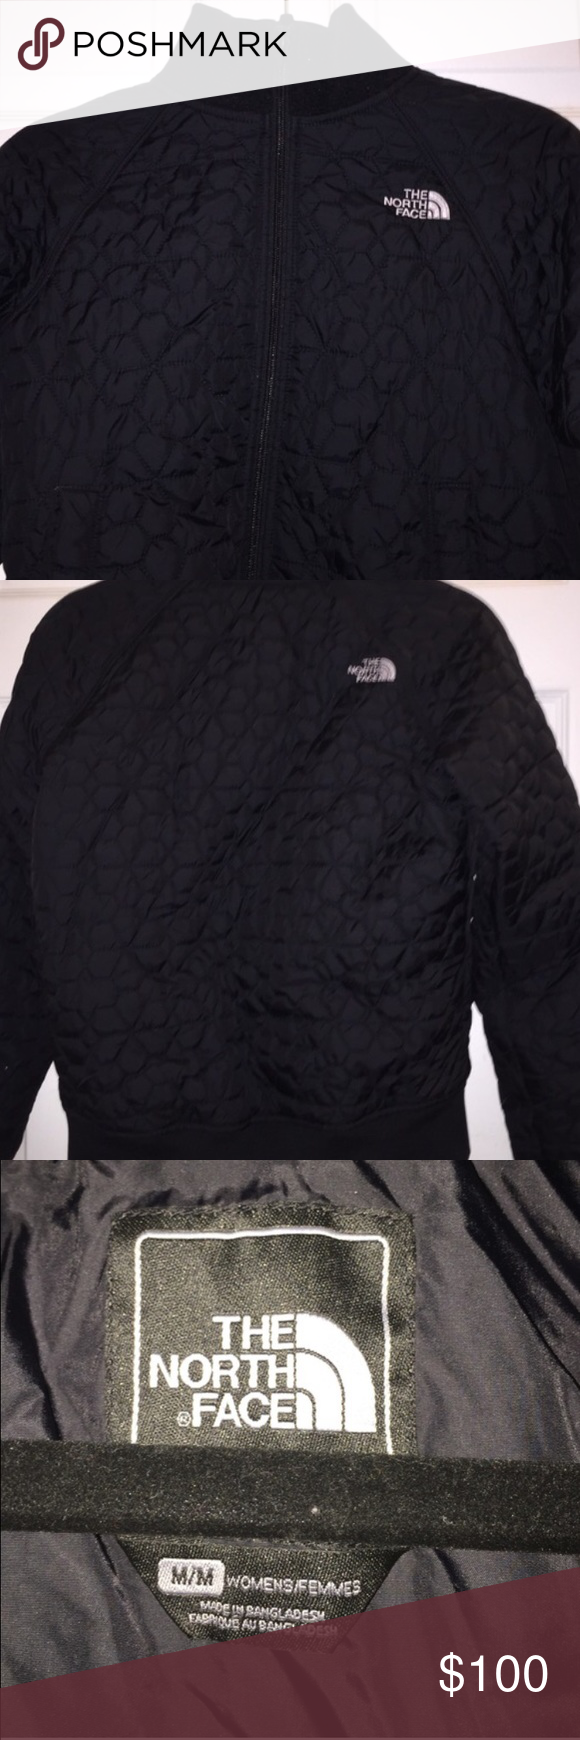 North Face Jacket Size M Face Conditioning And Winter